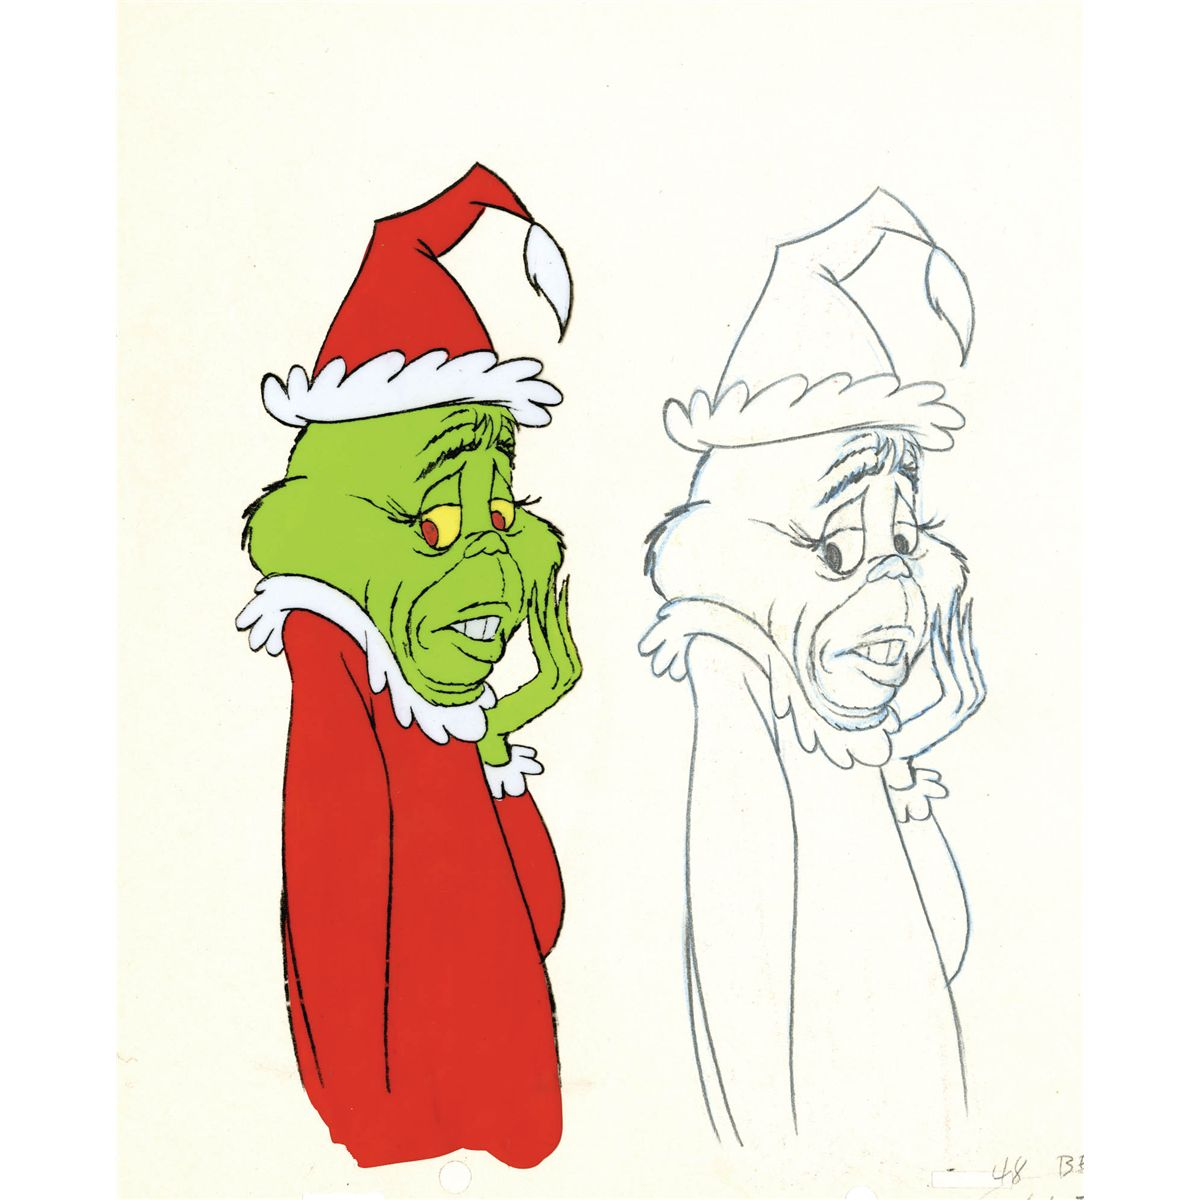 original production cel and matching drawing from how the grinch stole christmas - Who Wrote How The Grinch Stole Christmas